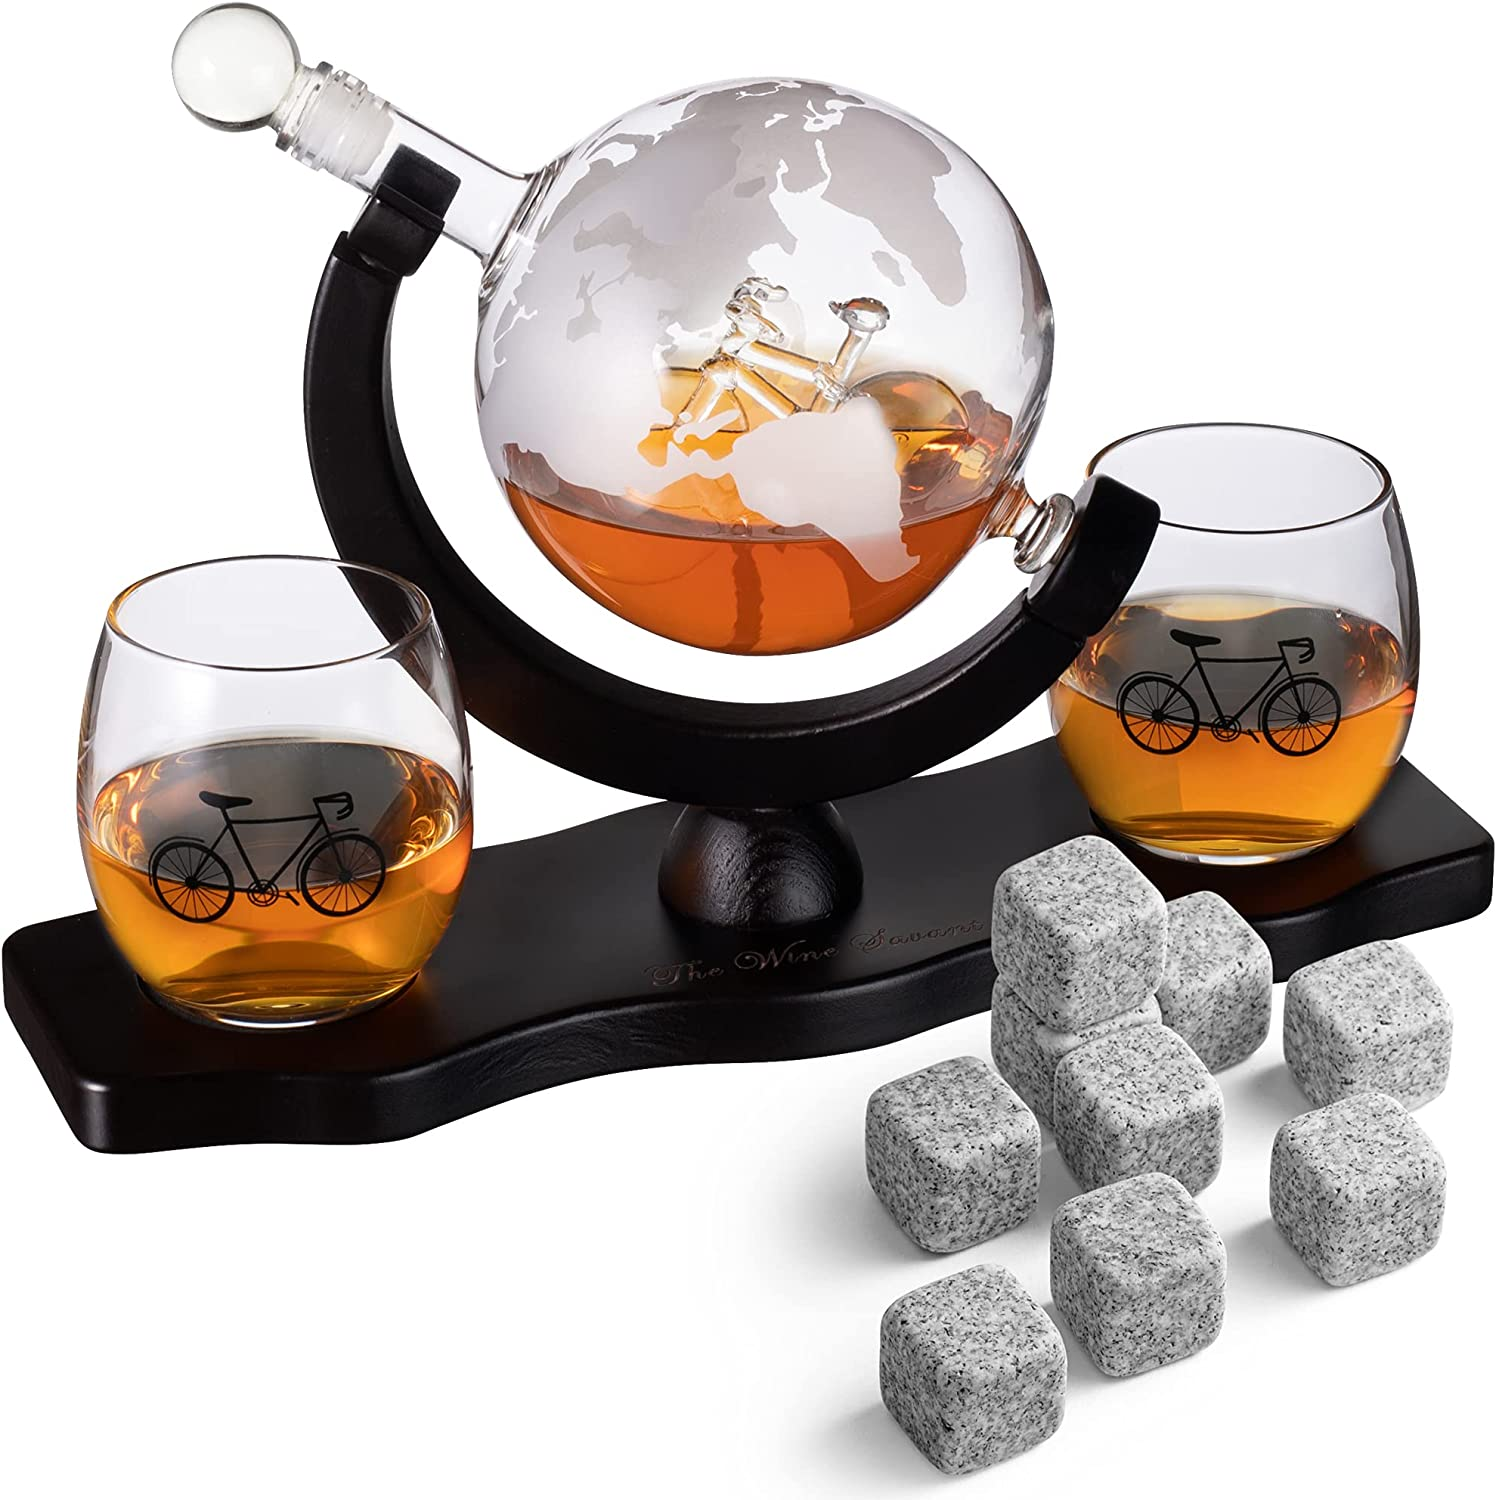 San Francisco Mall Bicycle Whiskey Decanter Sets 5 ☆ popular with 2 Glasses Bike Decan - Liquor